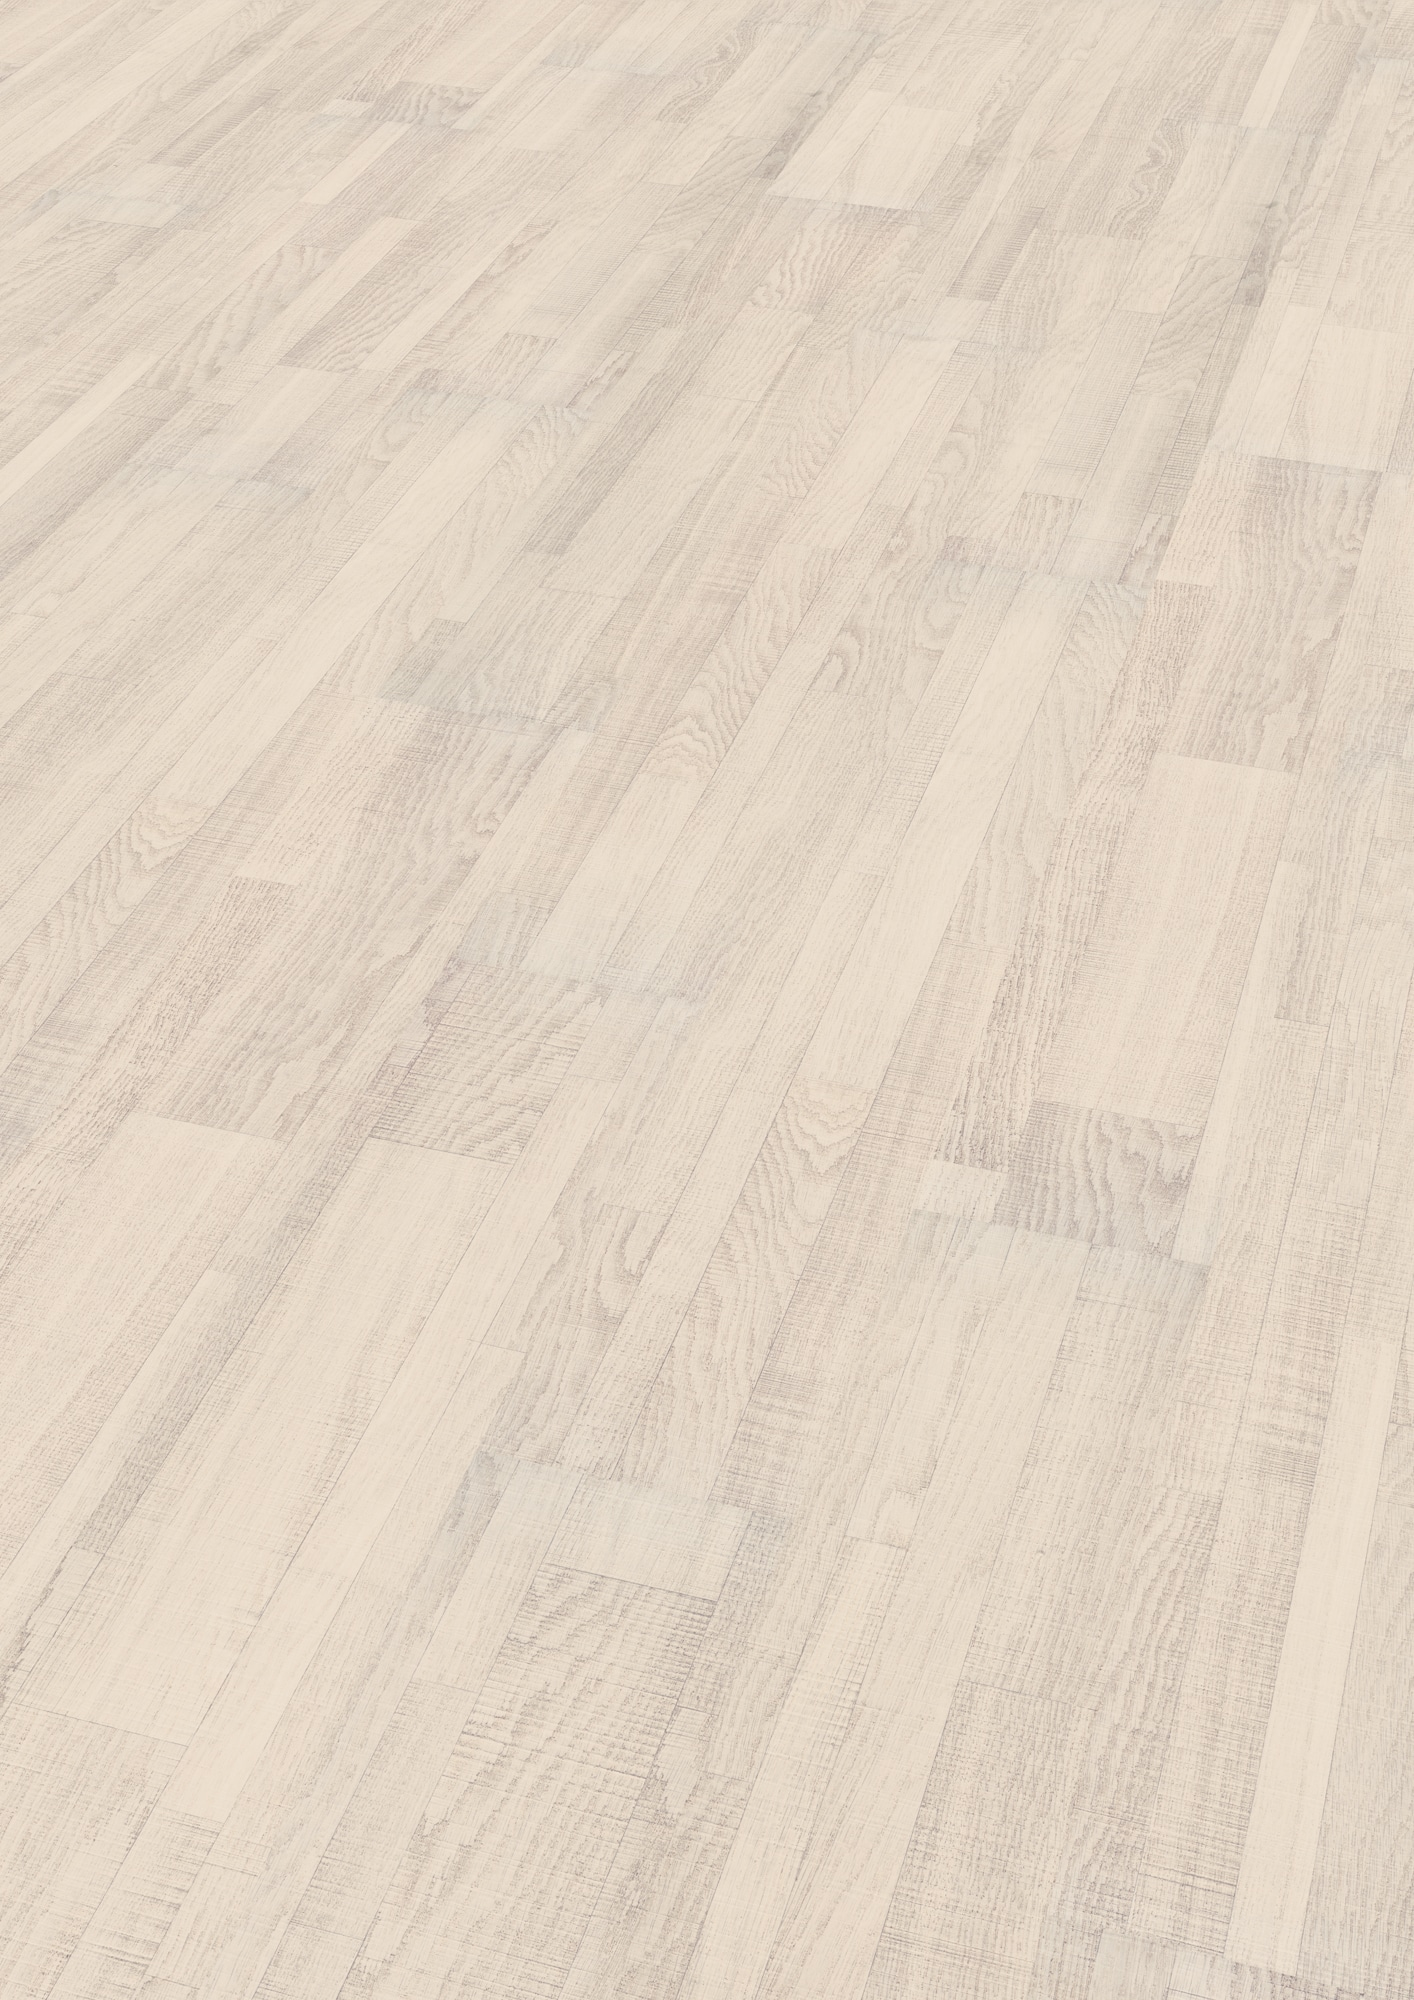 Finfloor original roble babylon blanco club del parquet for Suelo laminado roble